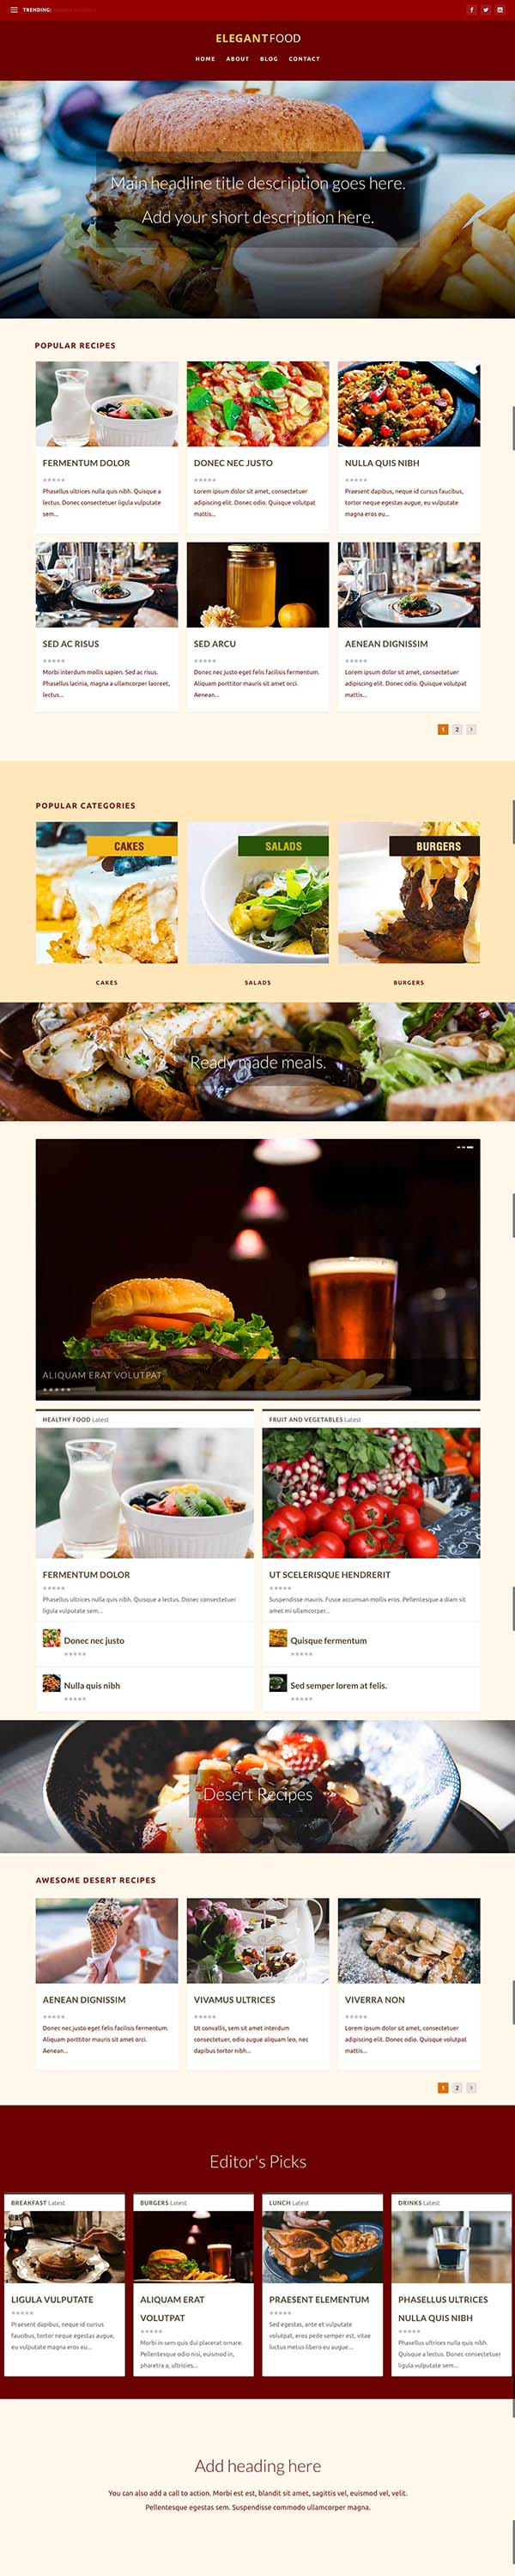 category food blogging resources